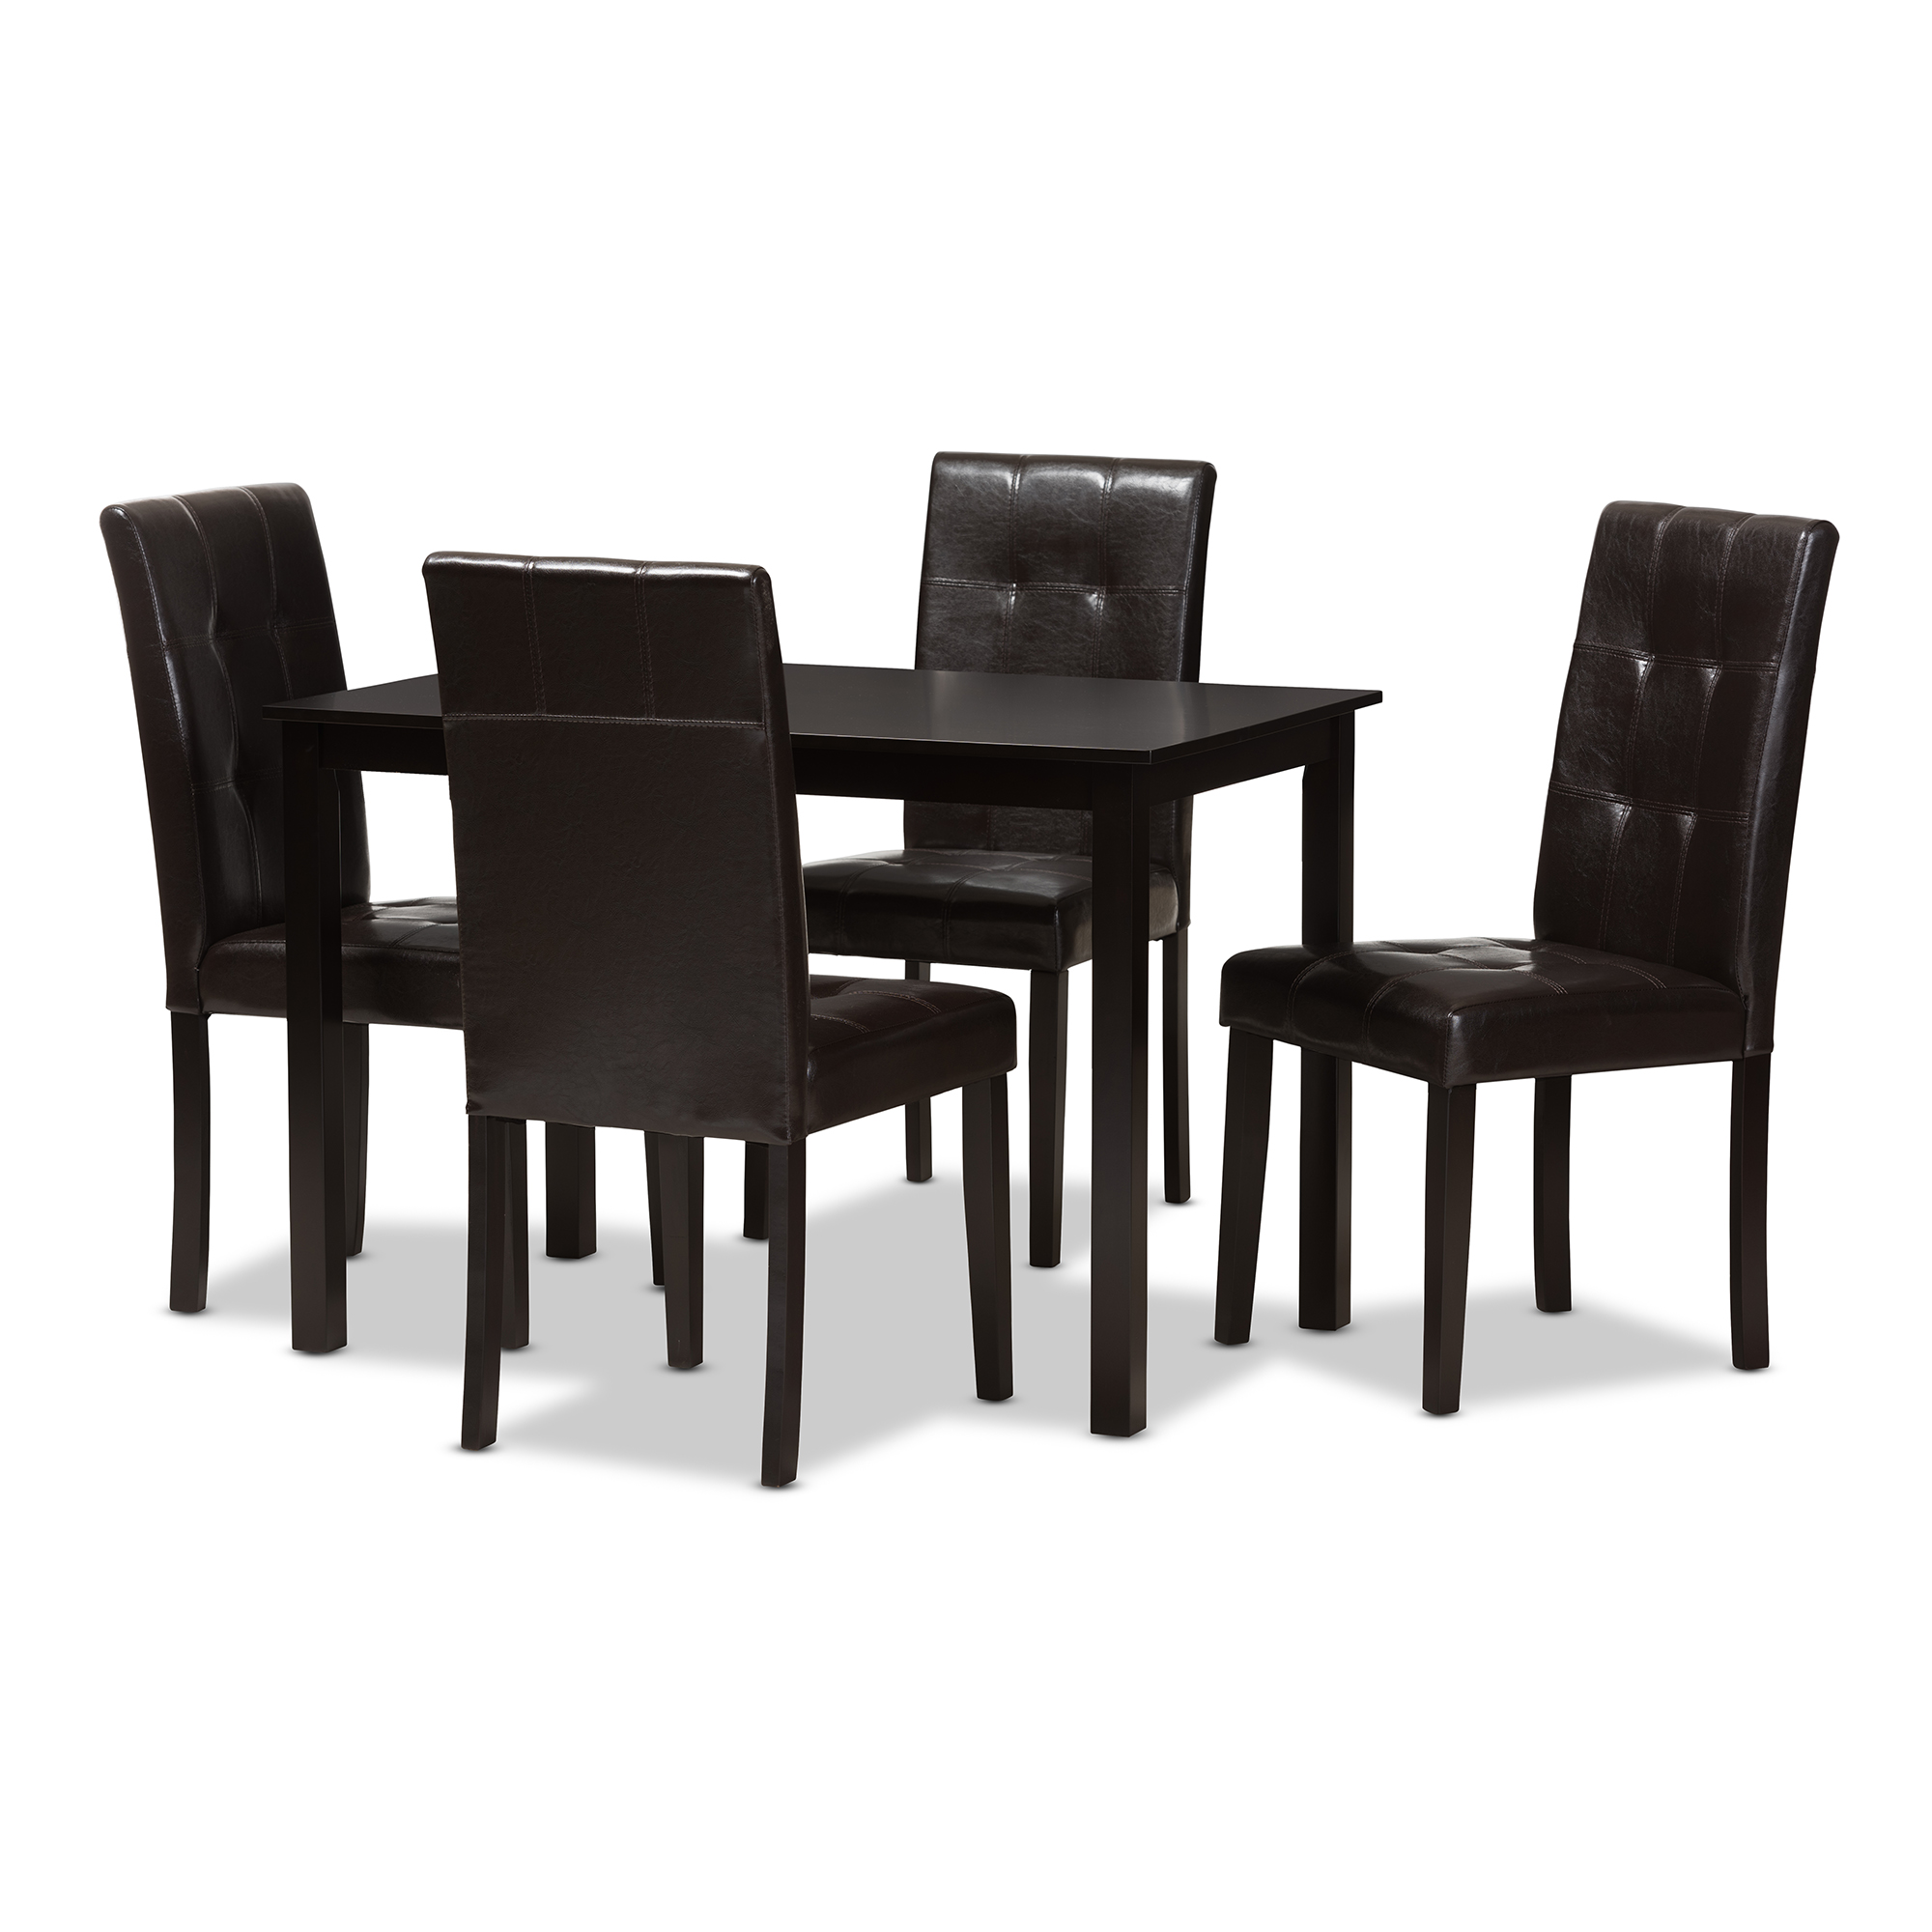 Baxton Studio Avery Modern And Contemporary Dark Brown Faux Leather  Upholstered 5 Piece Dining Set